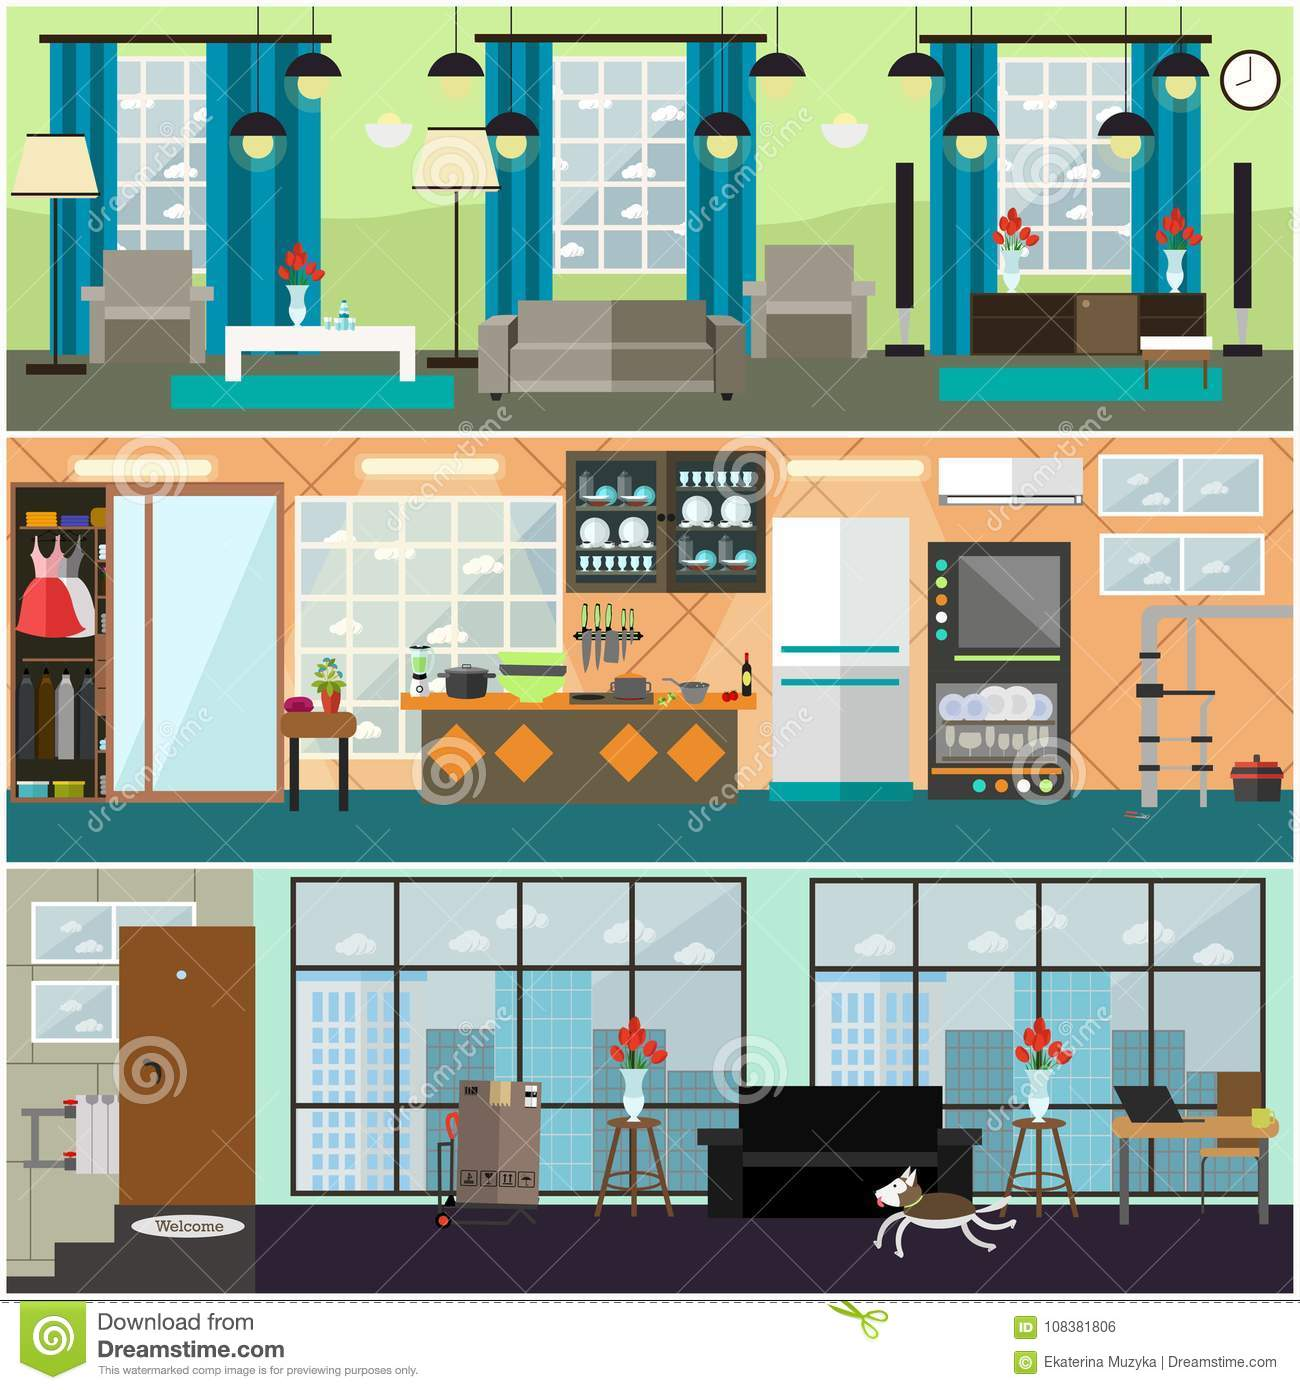 Plumbing Moving And Delivery Services Interior Vector Flat Poster